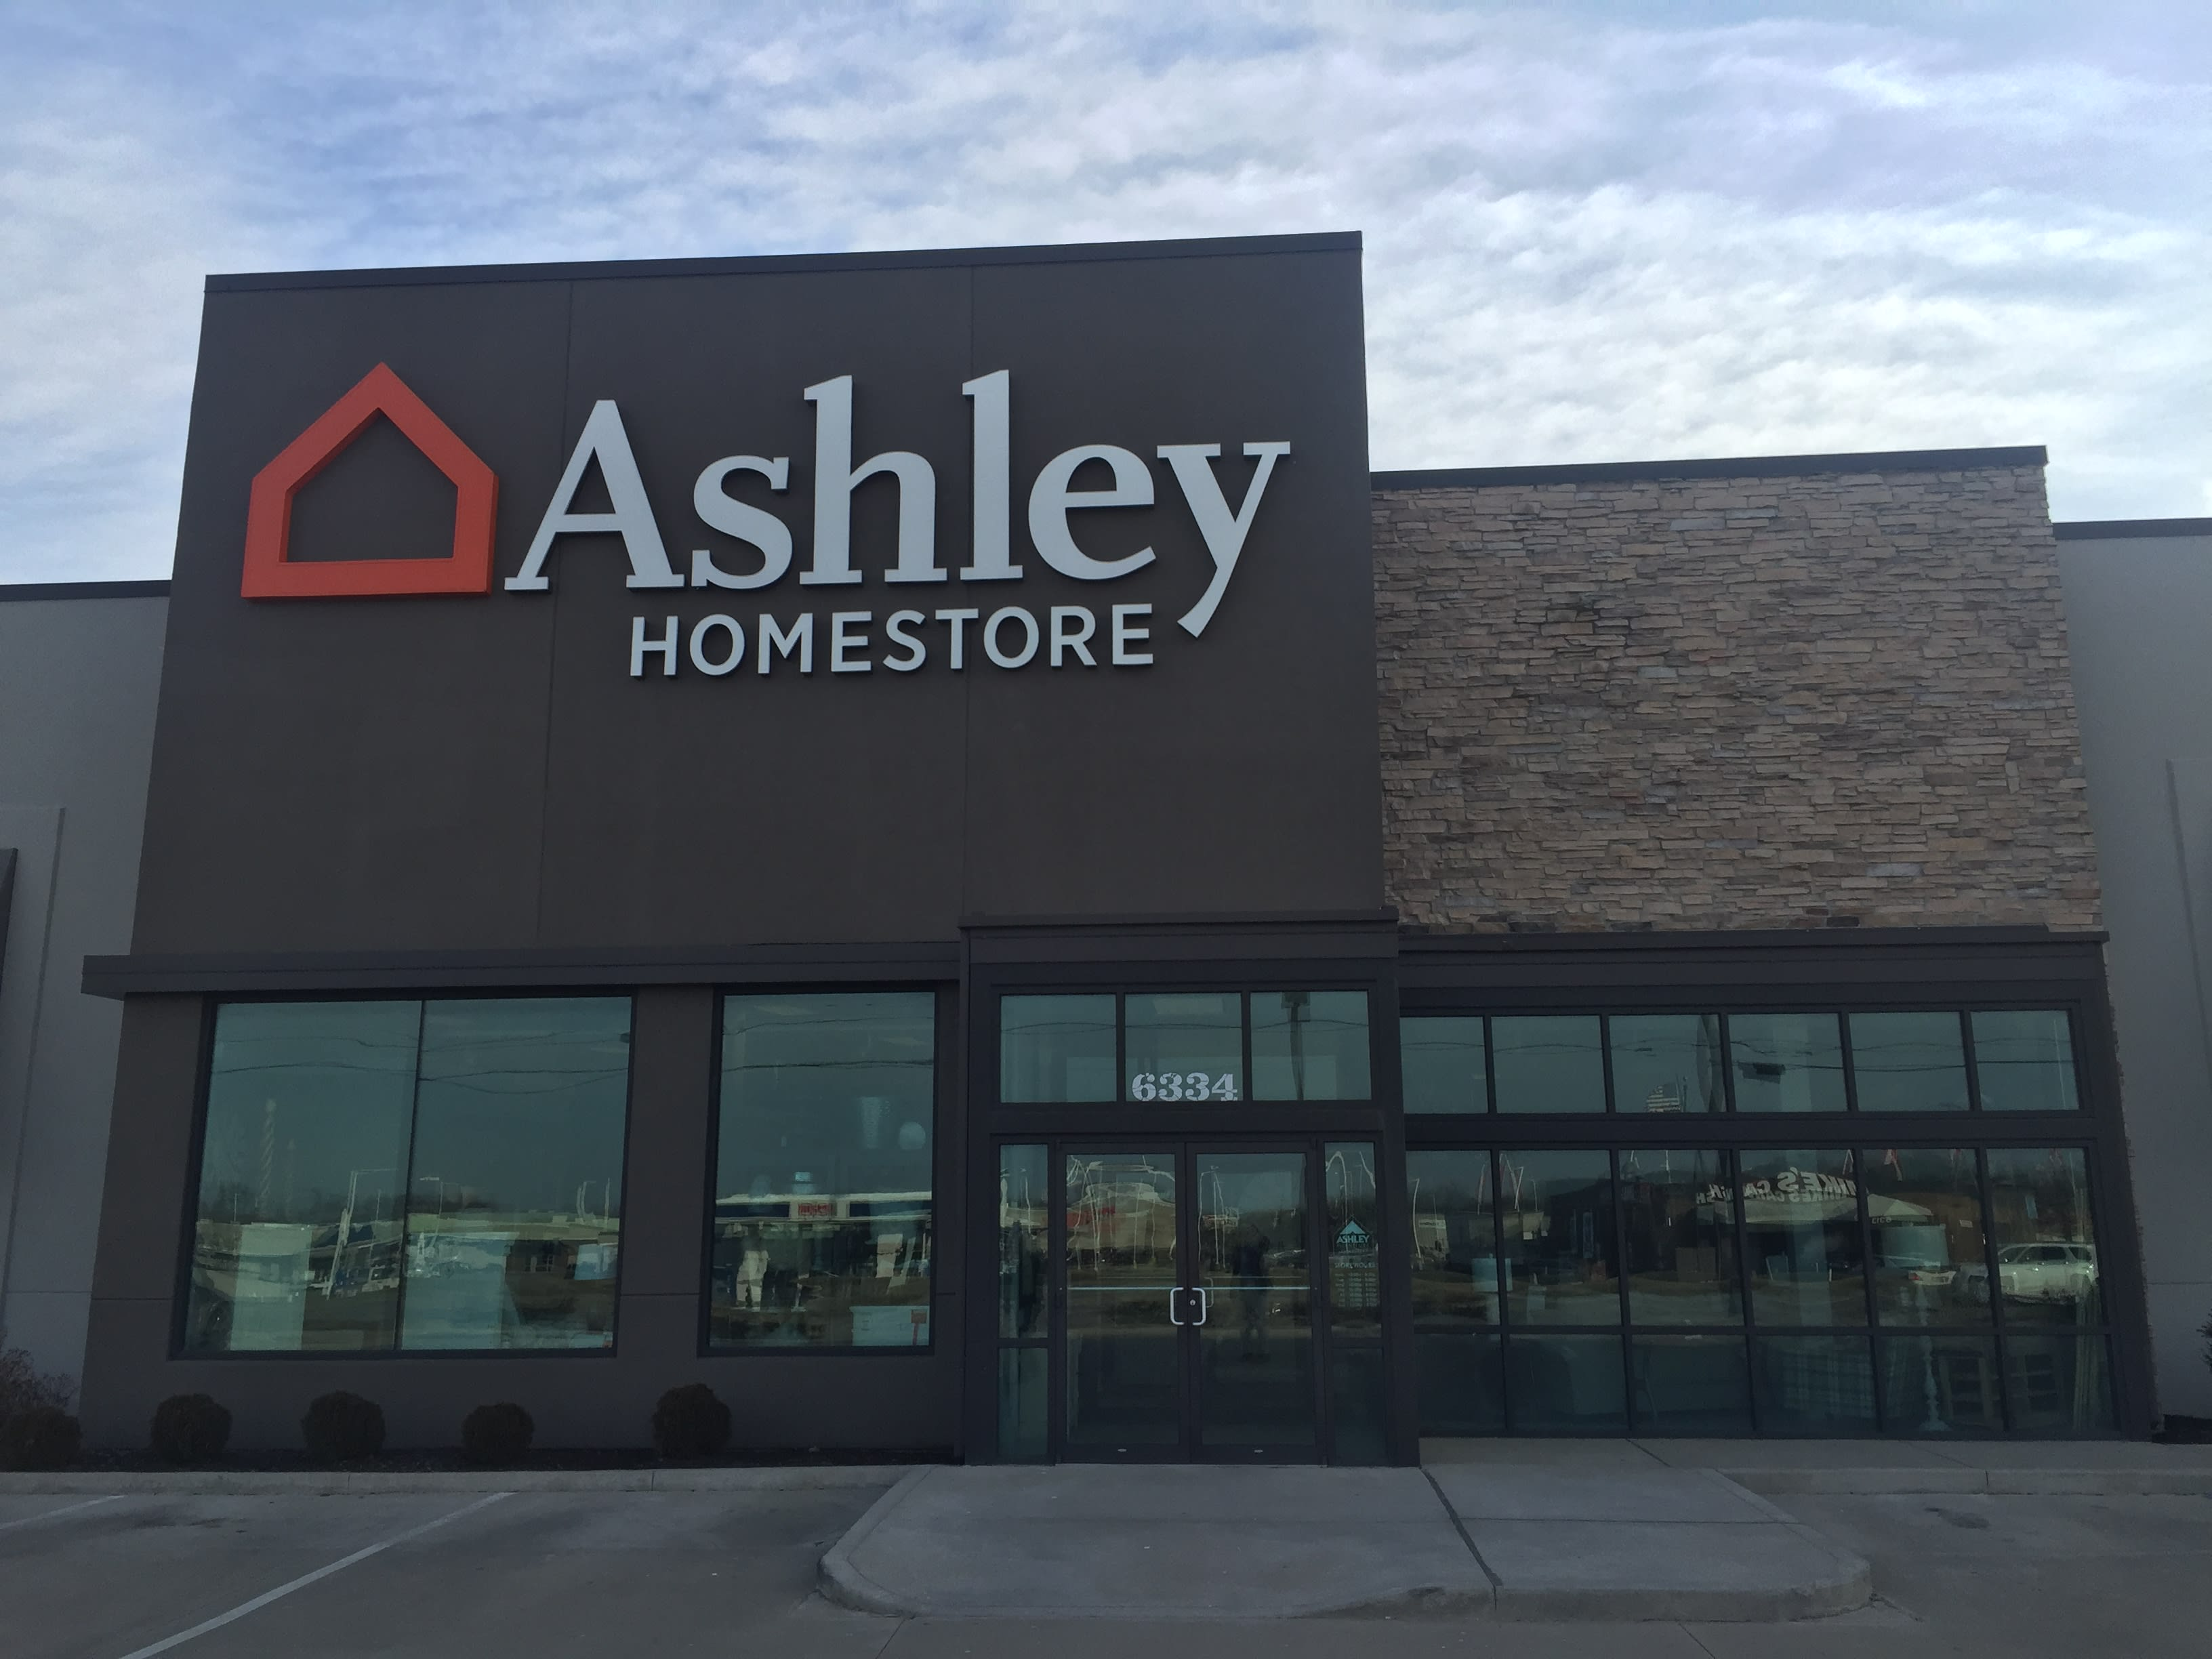 Fabulous Furniture And Mattress Store In Fort Wayne In Ashley Short Links Chair Design For Home Short Linksinfo